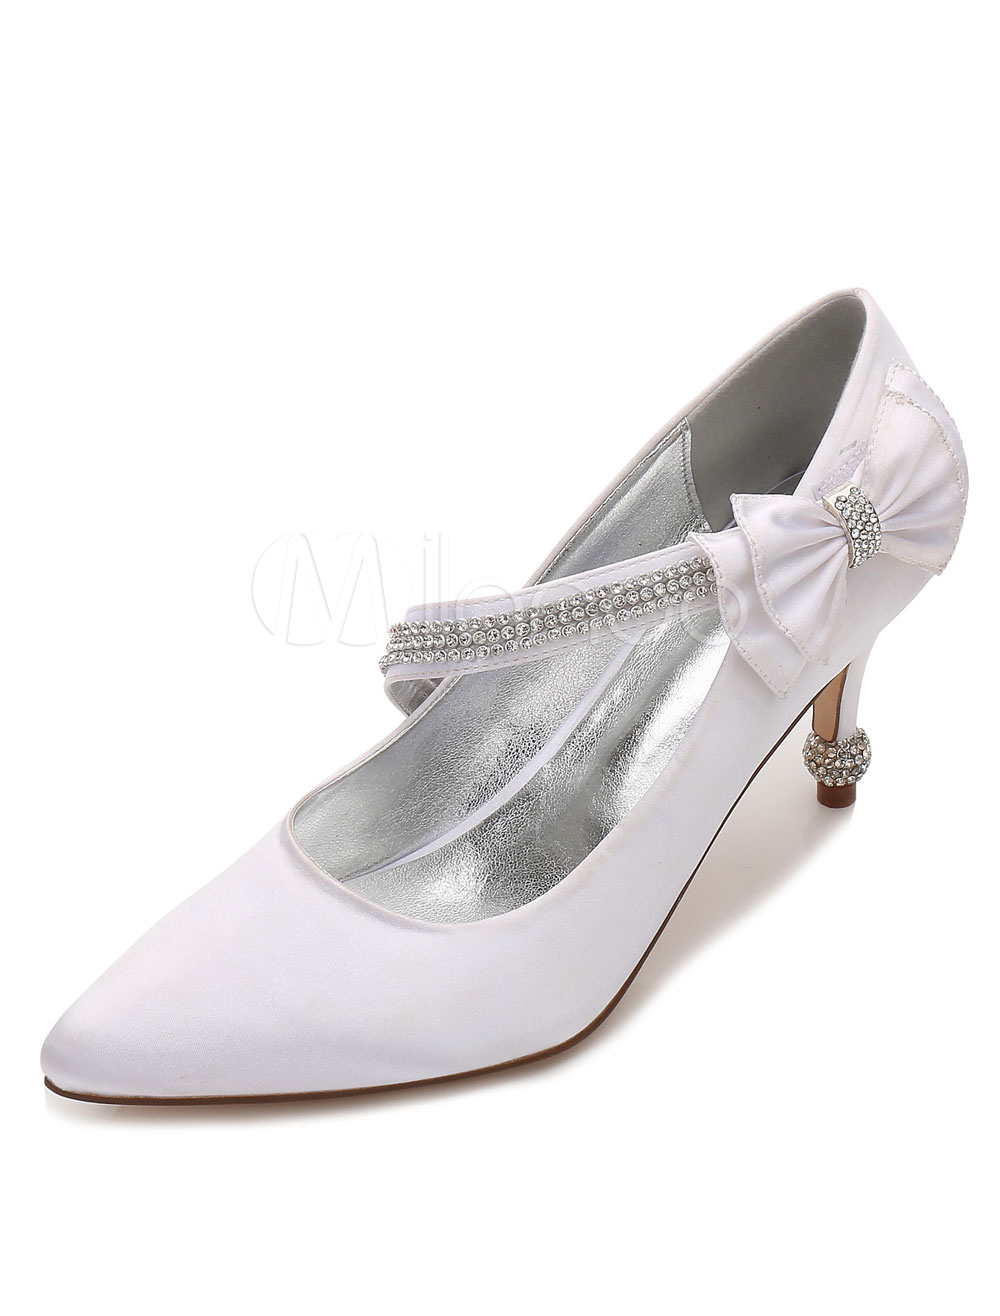 Buy White Wedding Shoes Satin Kitten Heel Pointed Toe Rhinestones Bow Bridal Shoes for $49.39 in Milanoo store